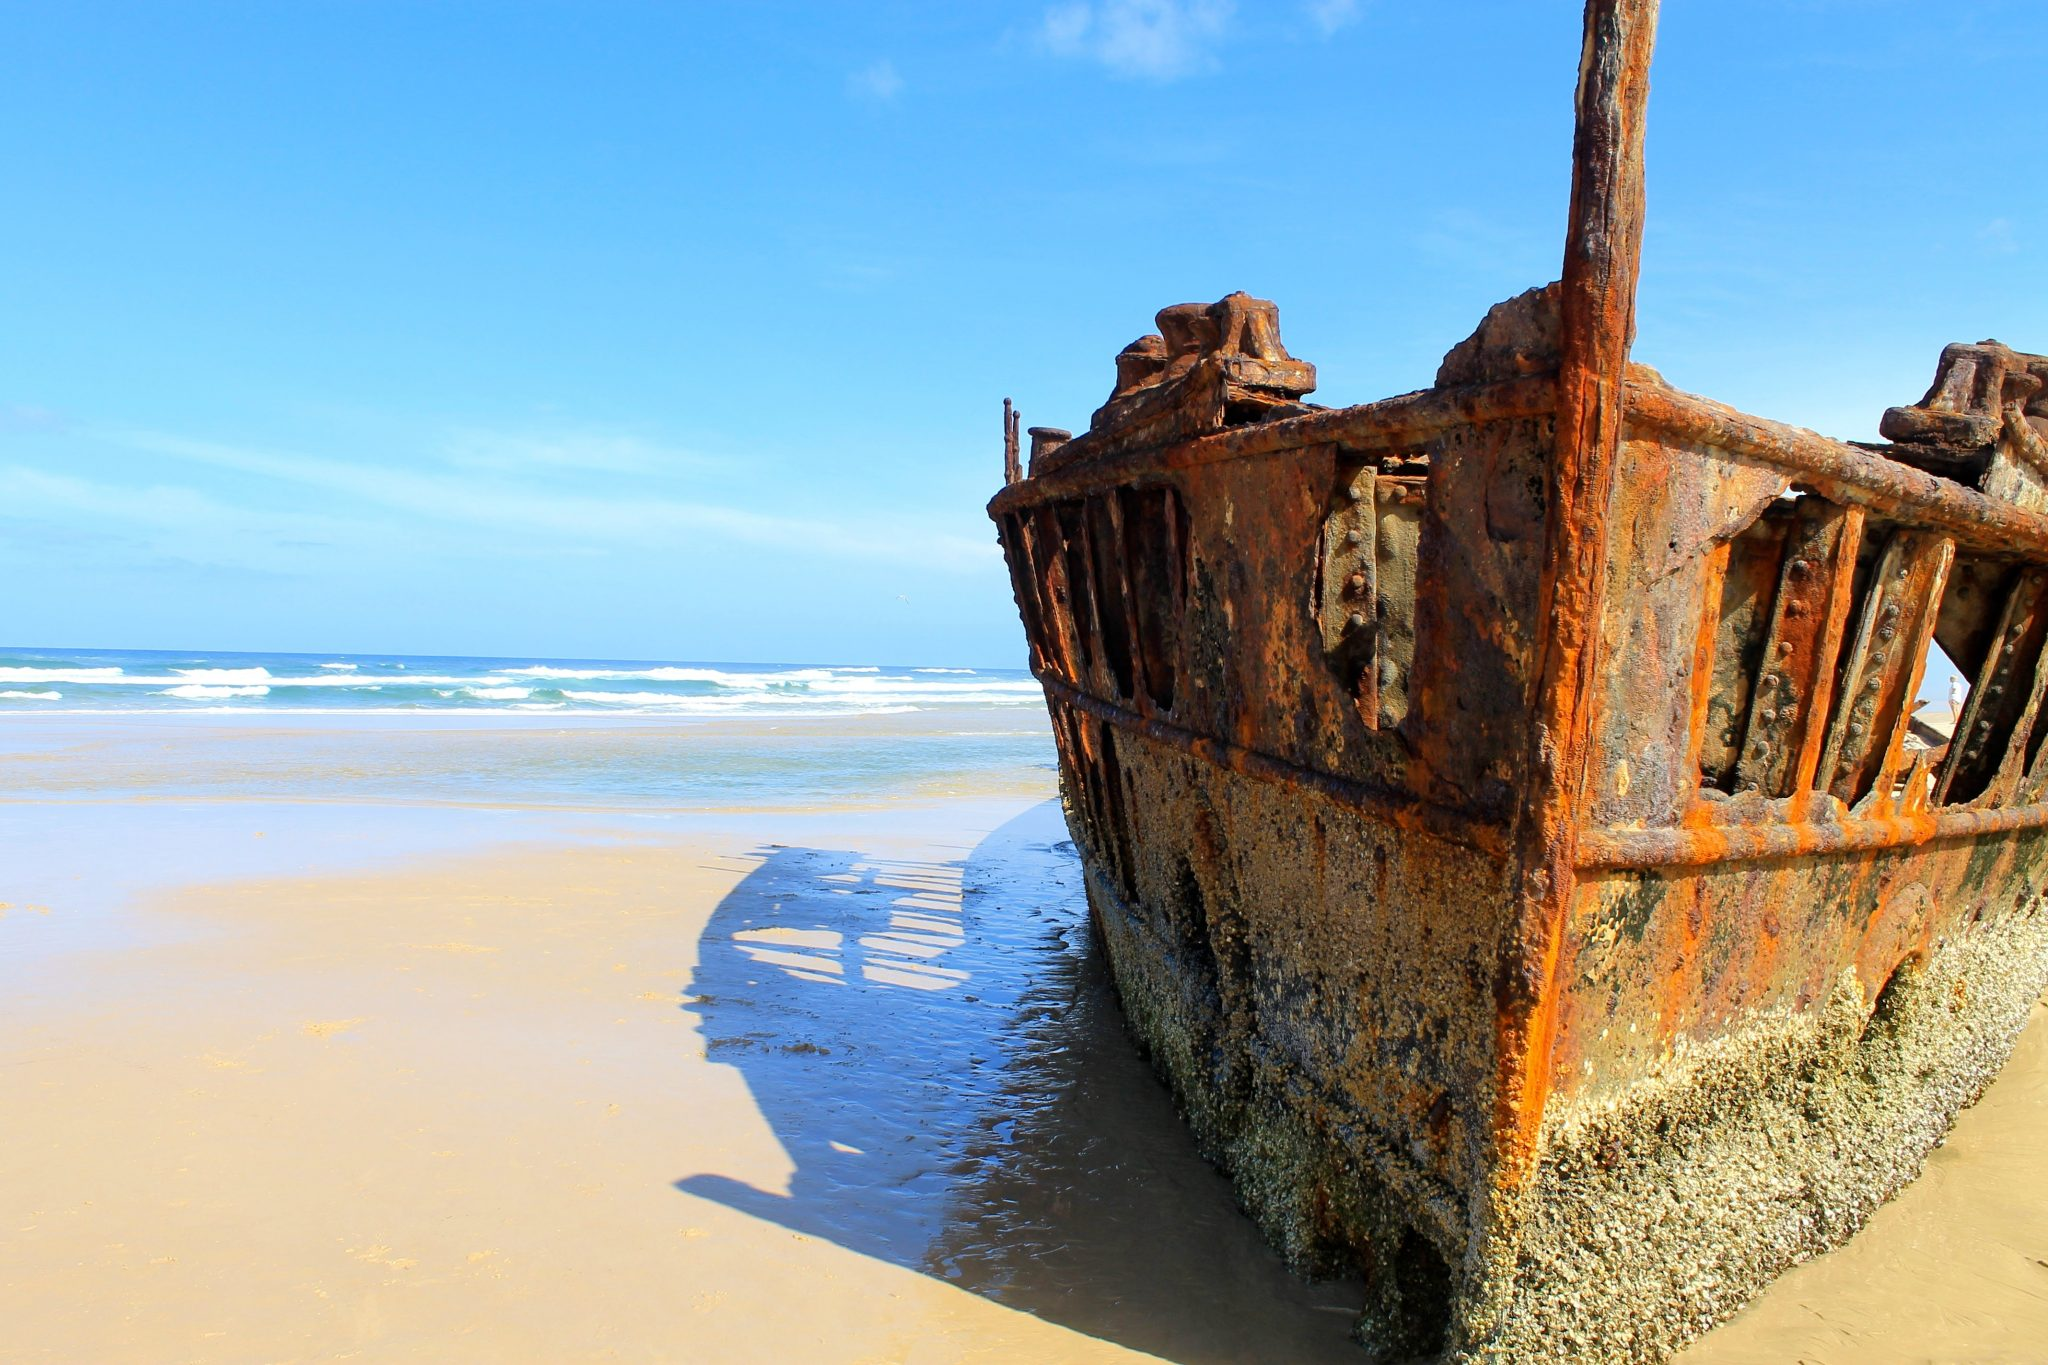 shipwreck in island 43 reviews of ship island excursions i'm not sure i have the words to properly express what an amazing and pleasurable experience my family and i had with ship island excursions on august 5th, 2018 it was the most fun we have head in years.